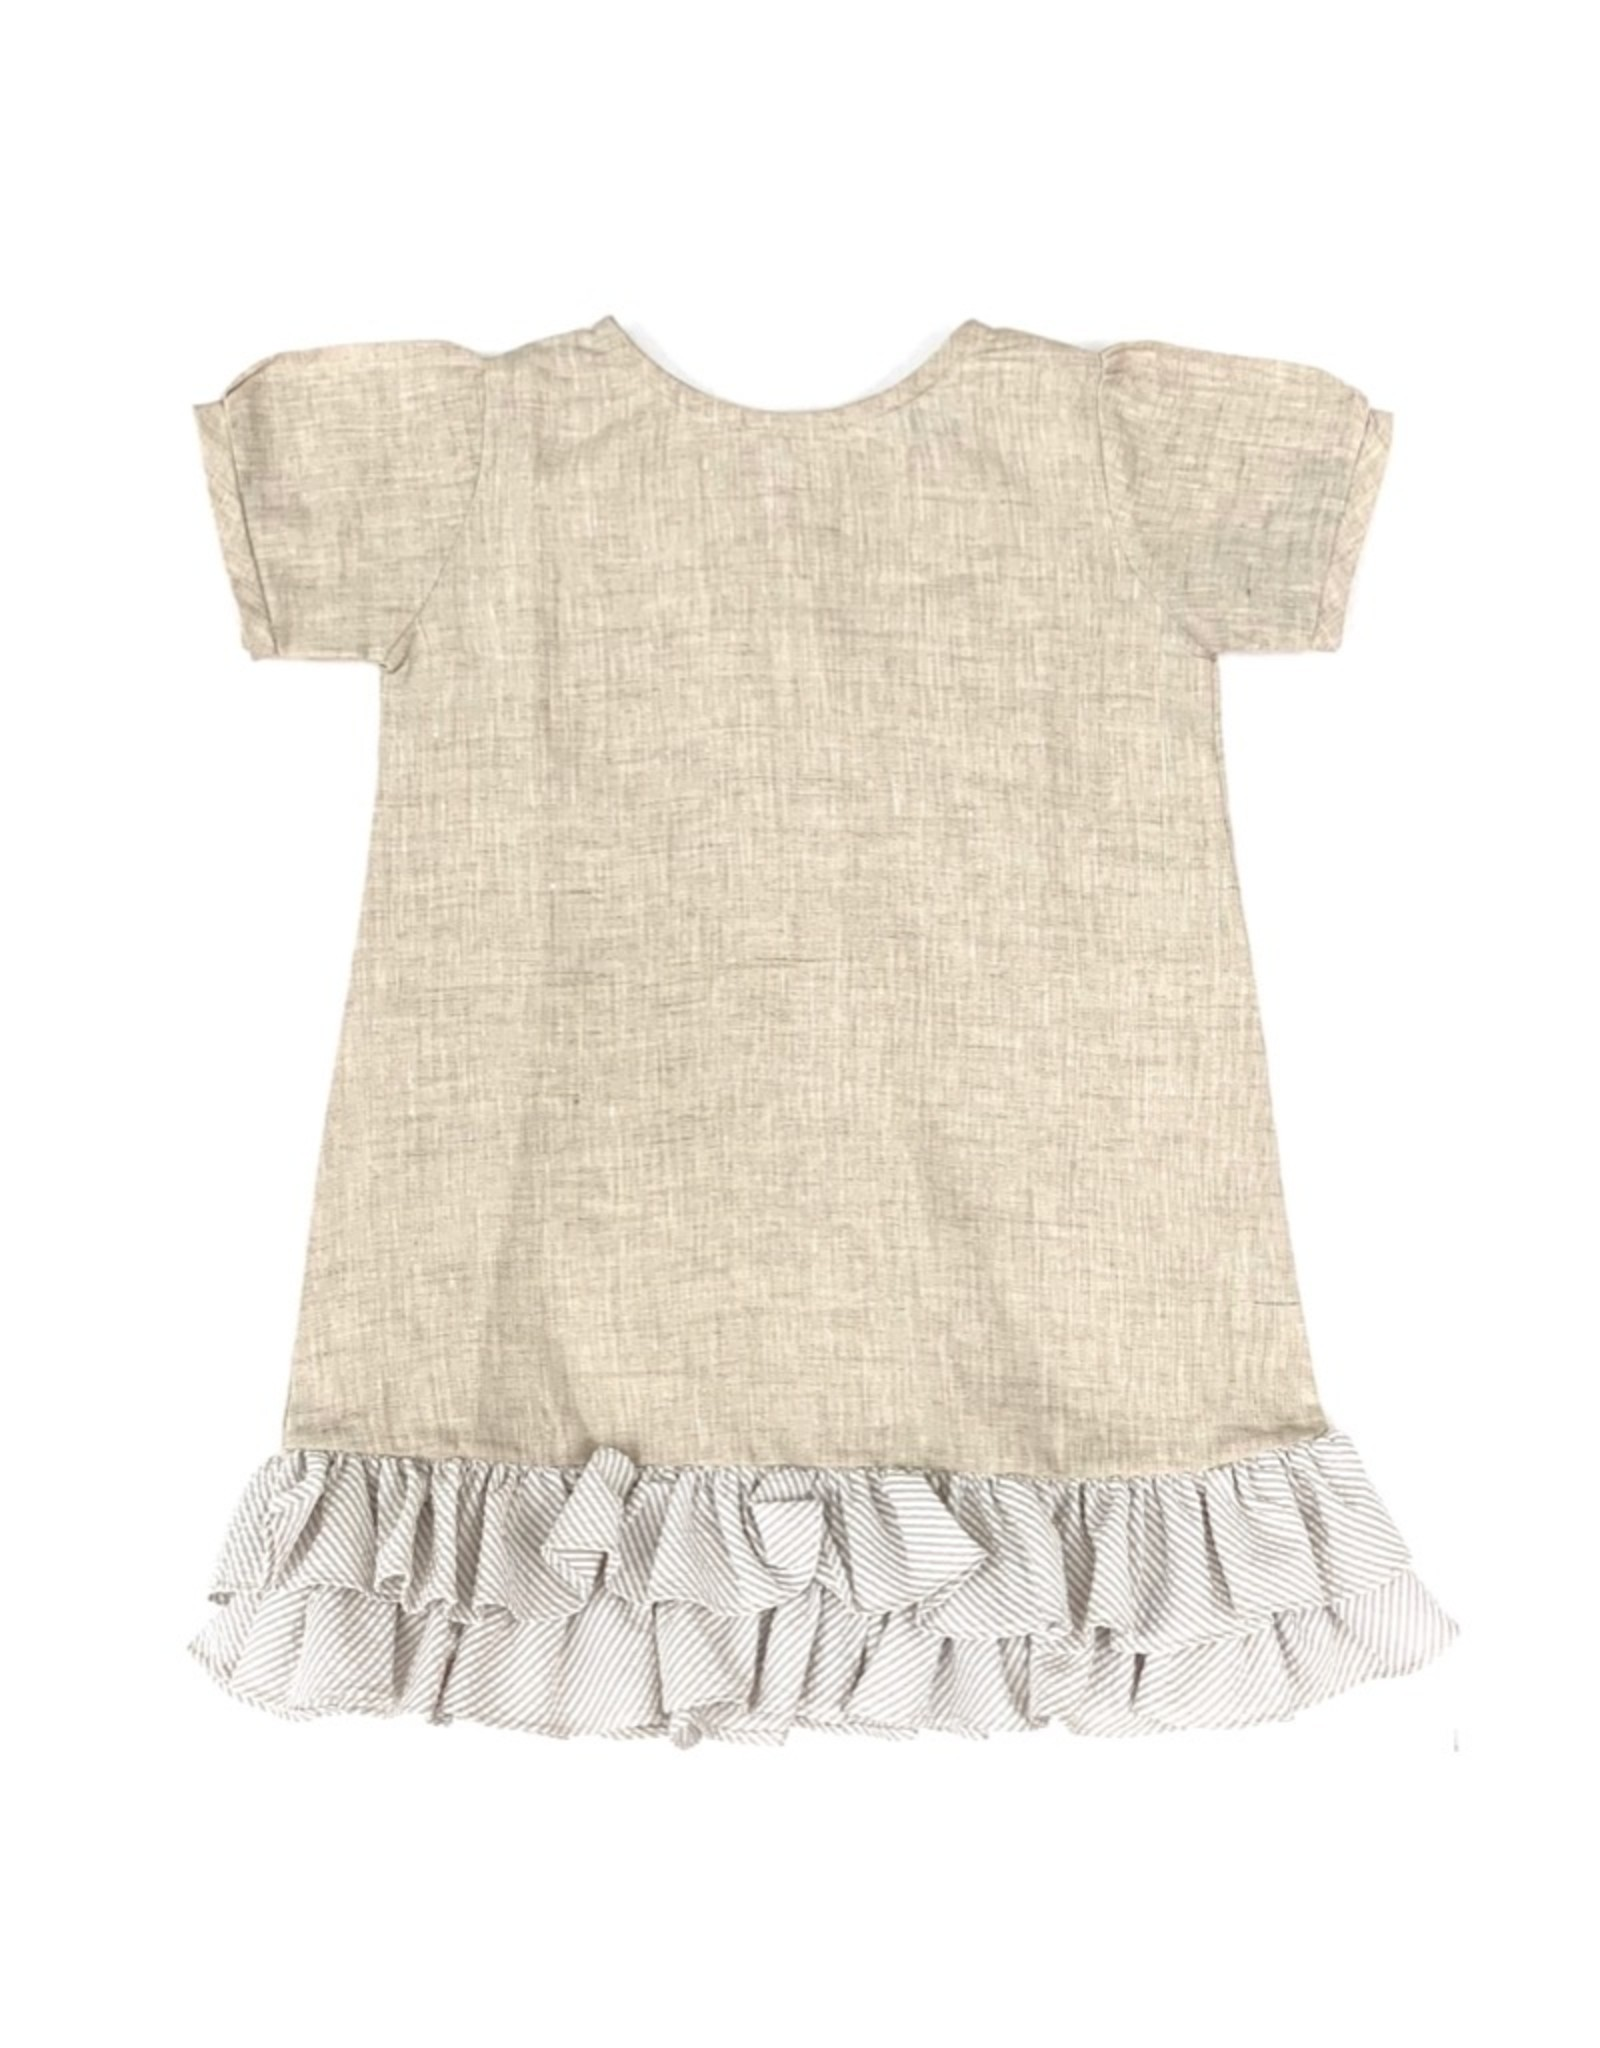 Giselle Girls Dress Oatmeal With Stripes